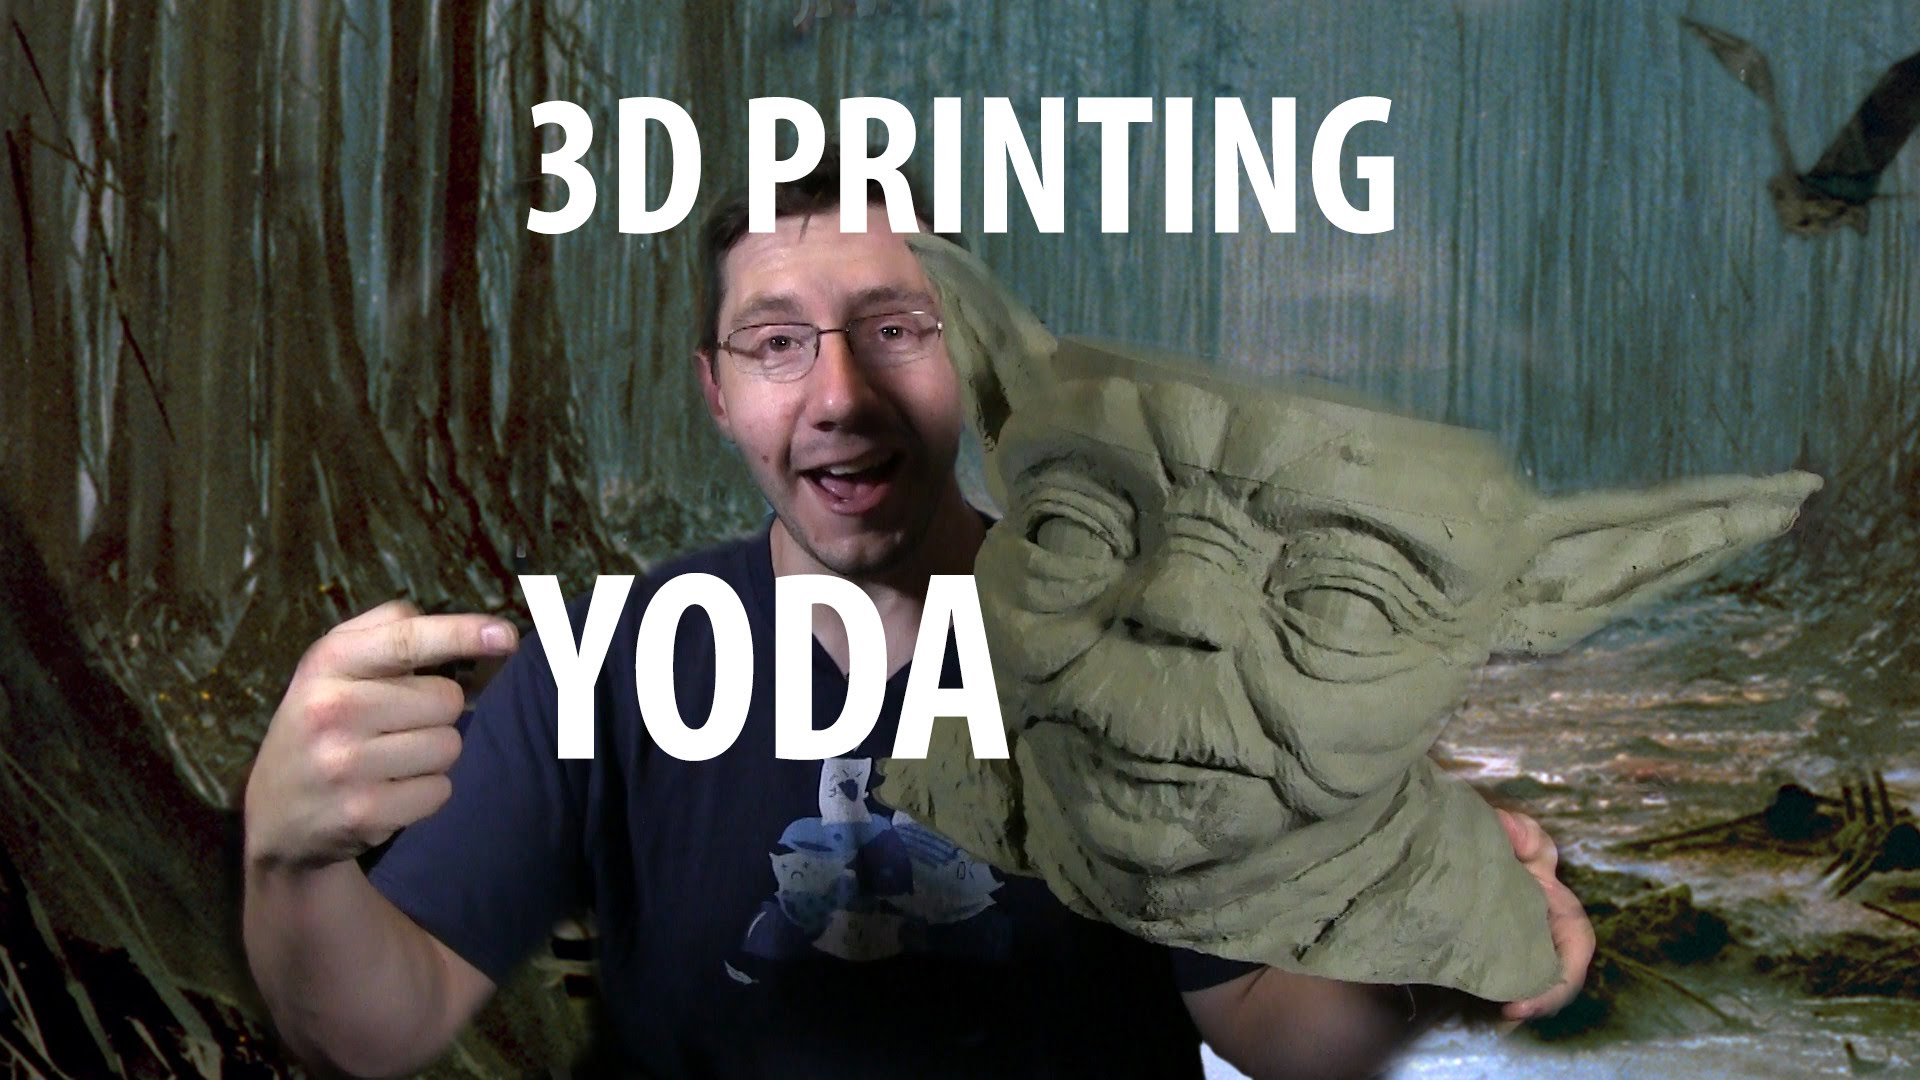 3D Printing – Star Wars Yoda Bowl by Printed Solid